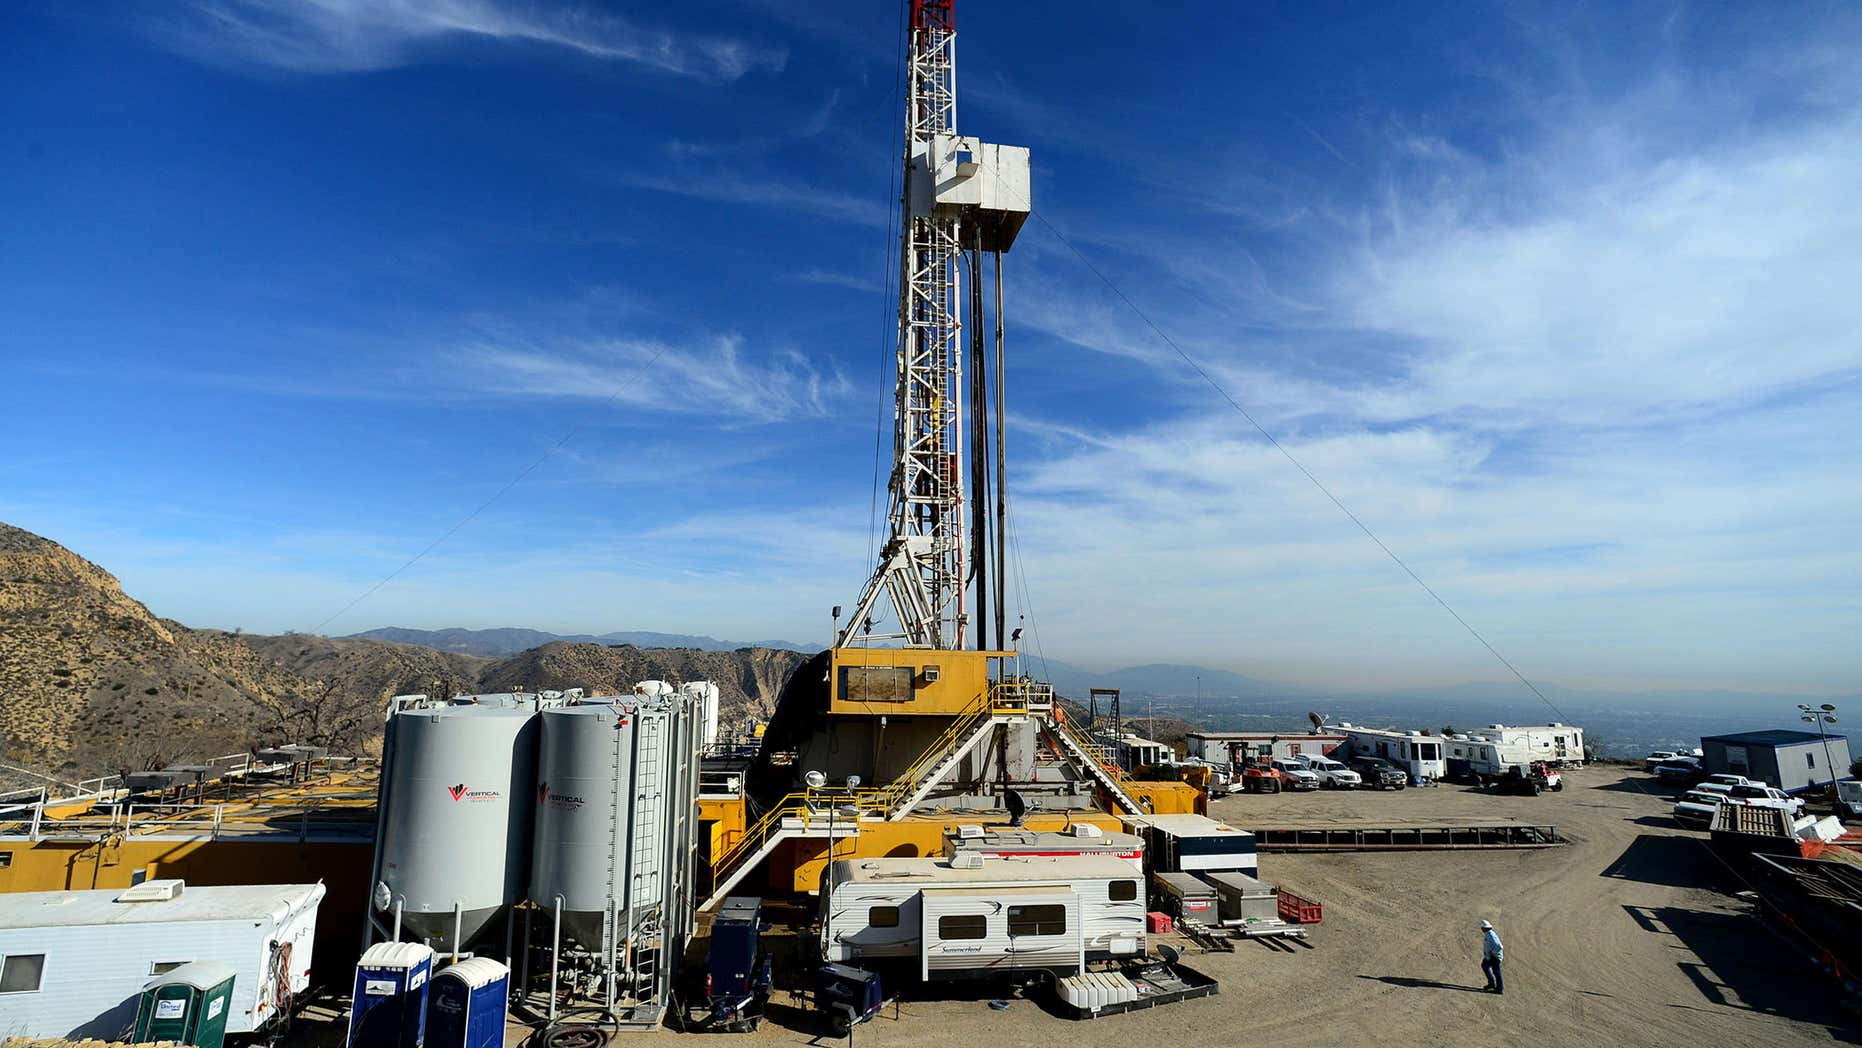 FILE - In this Dec. 9, 2015, pool file photo, crews work on stopping a gas leak at a relief well at the Aliso Canyon facility above the Porter Ranch area of Los Angeles.